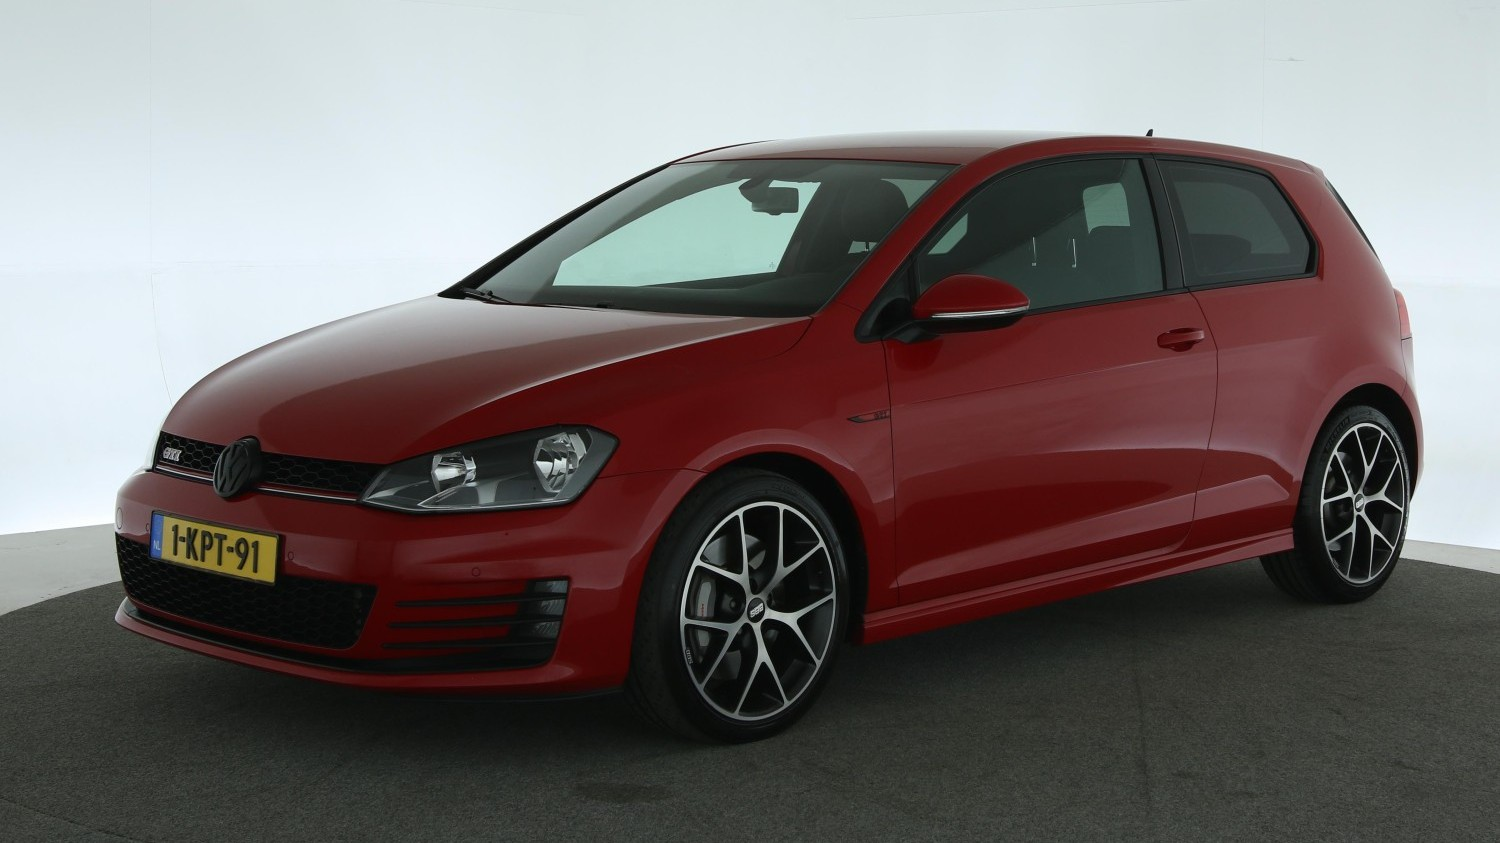 Volkswagen Golf Hatchback 2013 1-KPT-91 1